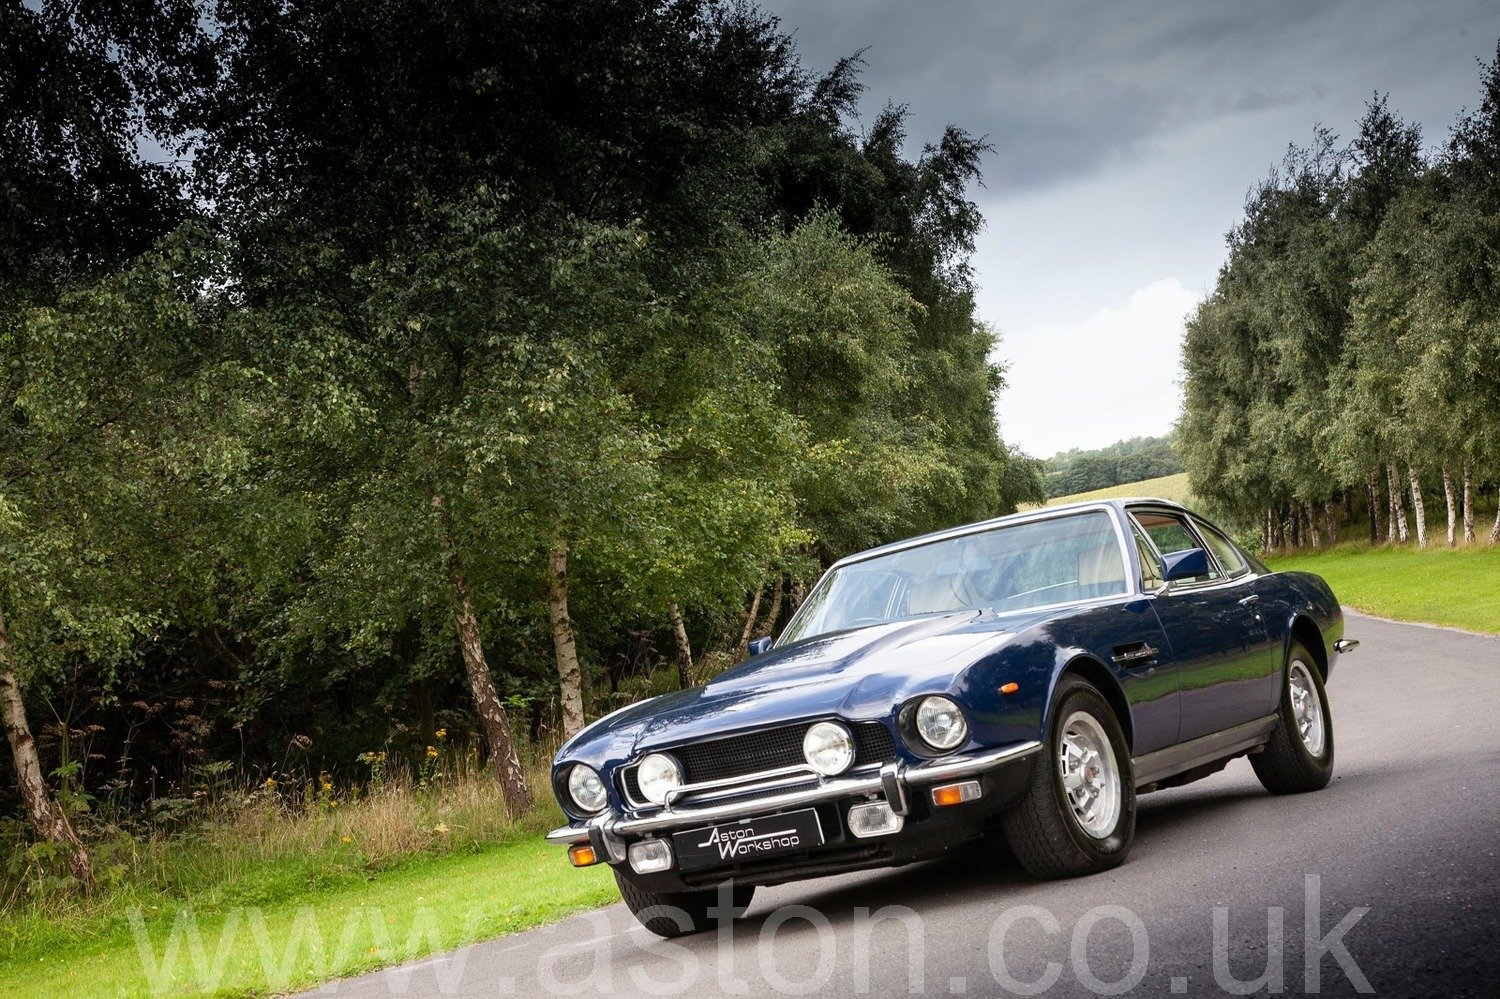 1981 Aston Martin V8 Series IV Oscar India SOLD (picture 2 of 6)